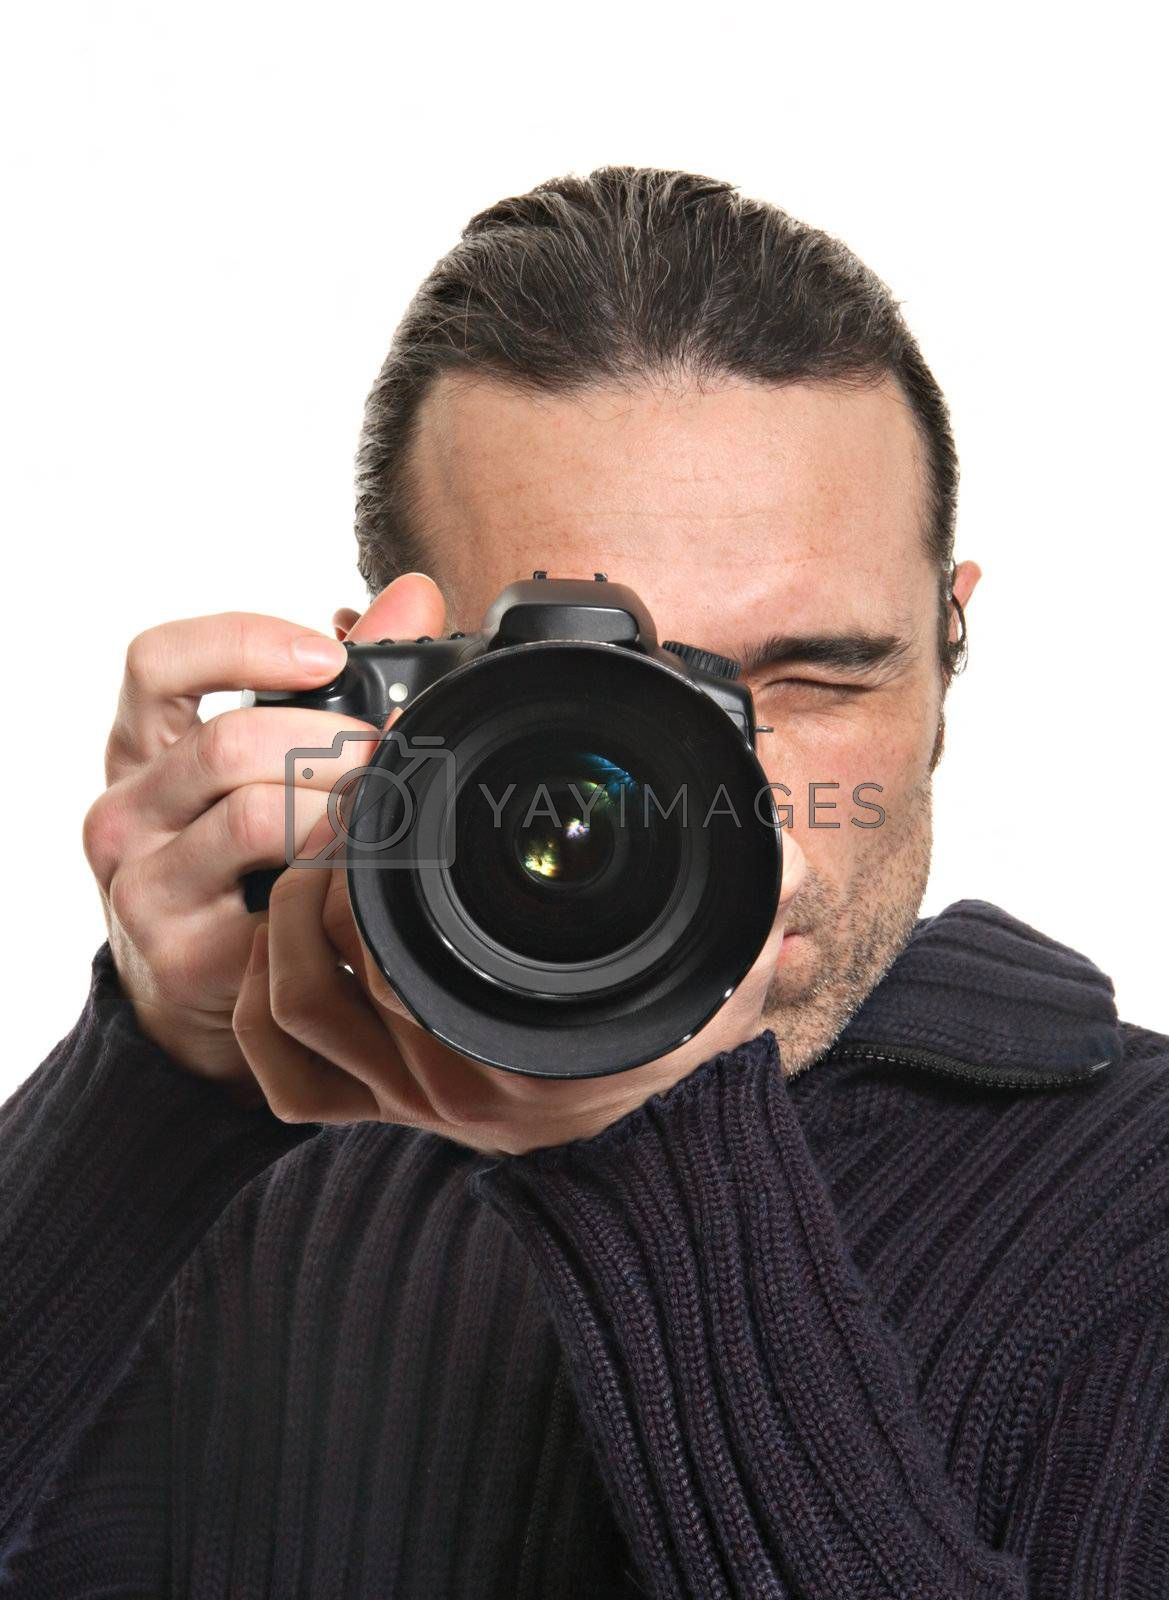 Royalty free image of  photographer by Gravicapa